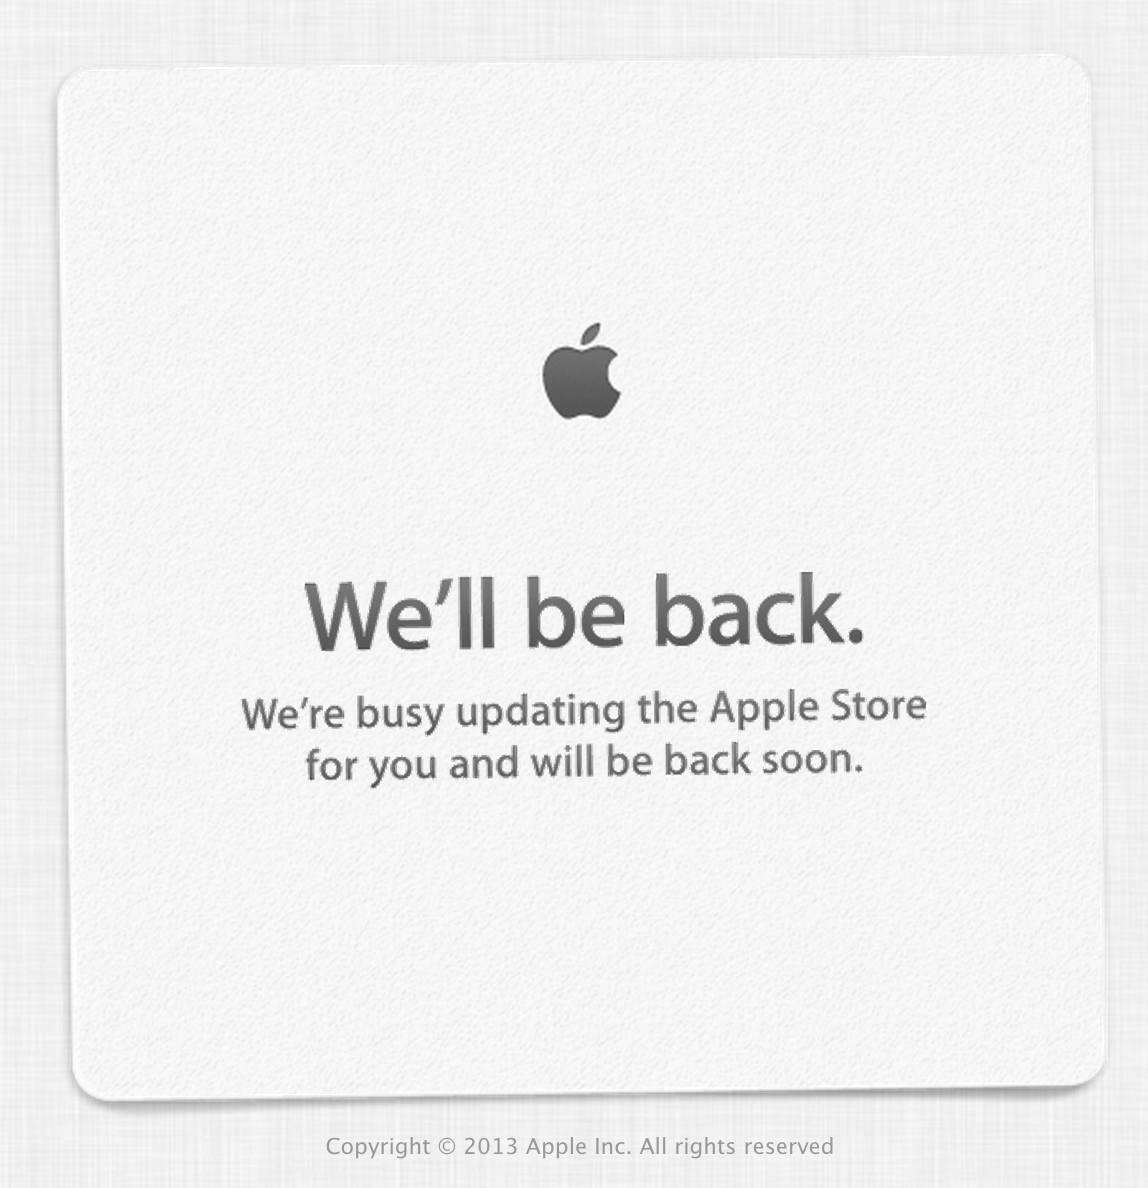 apple store be back